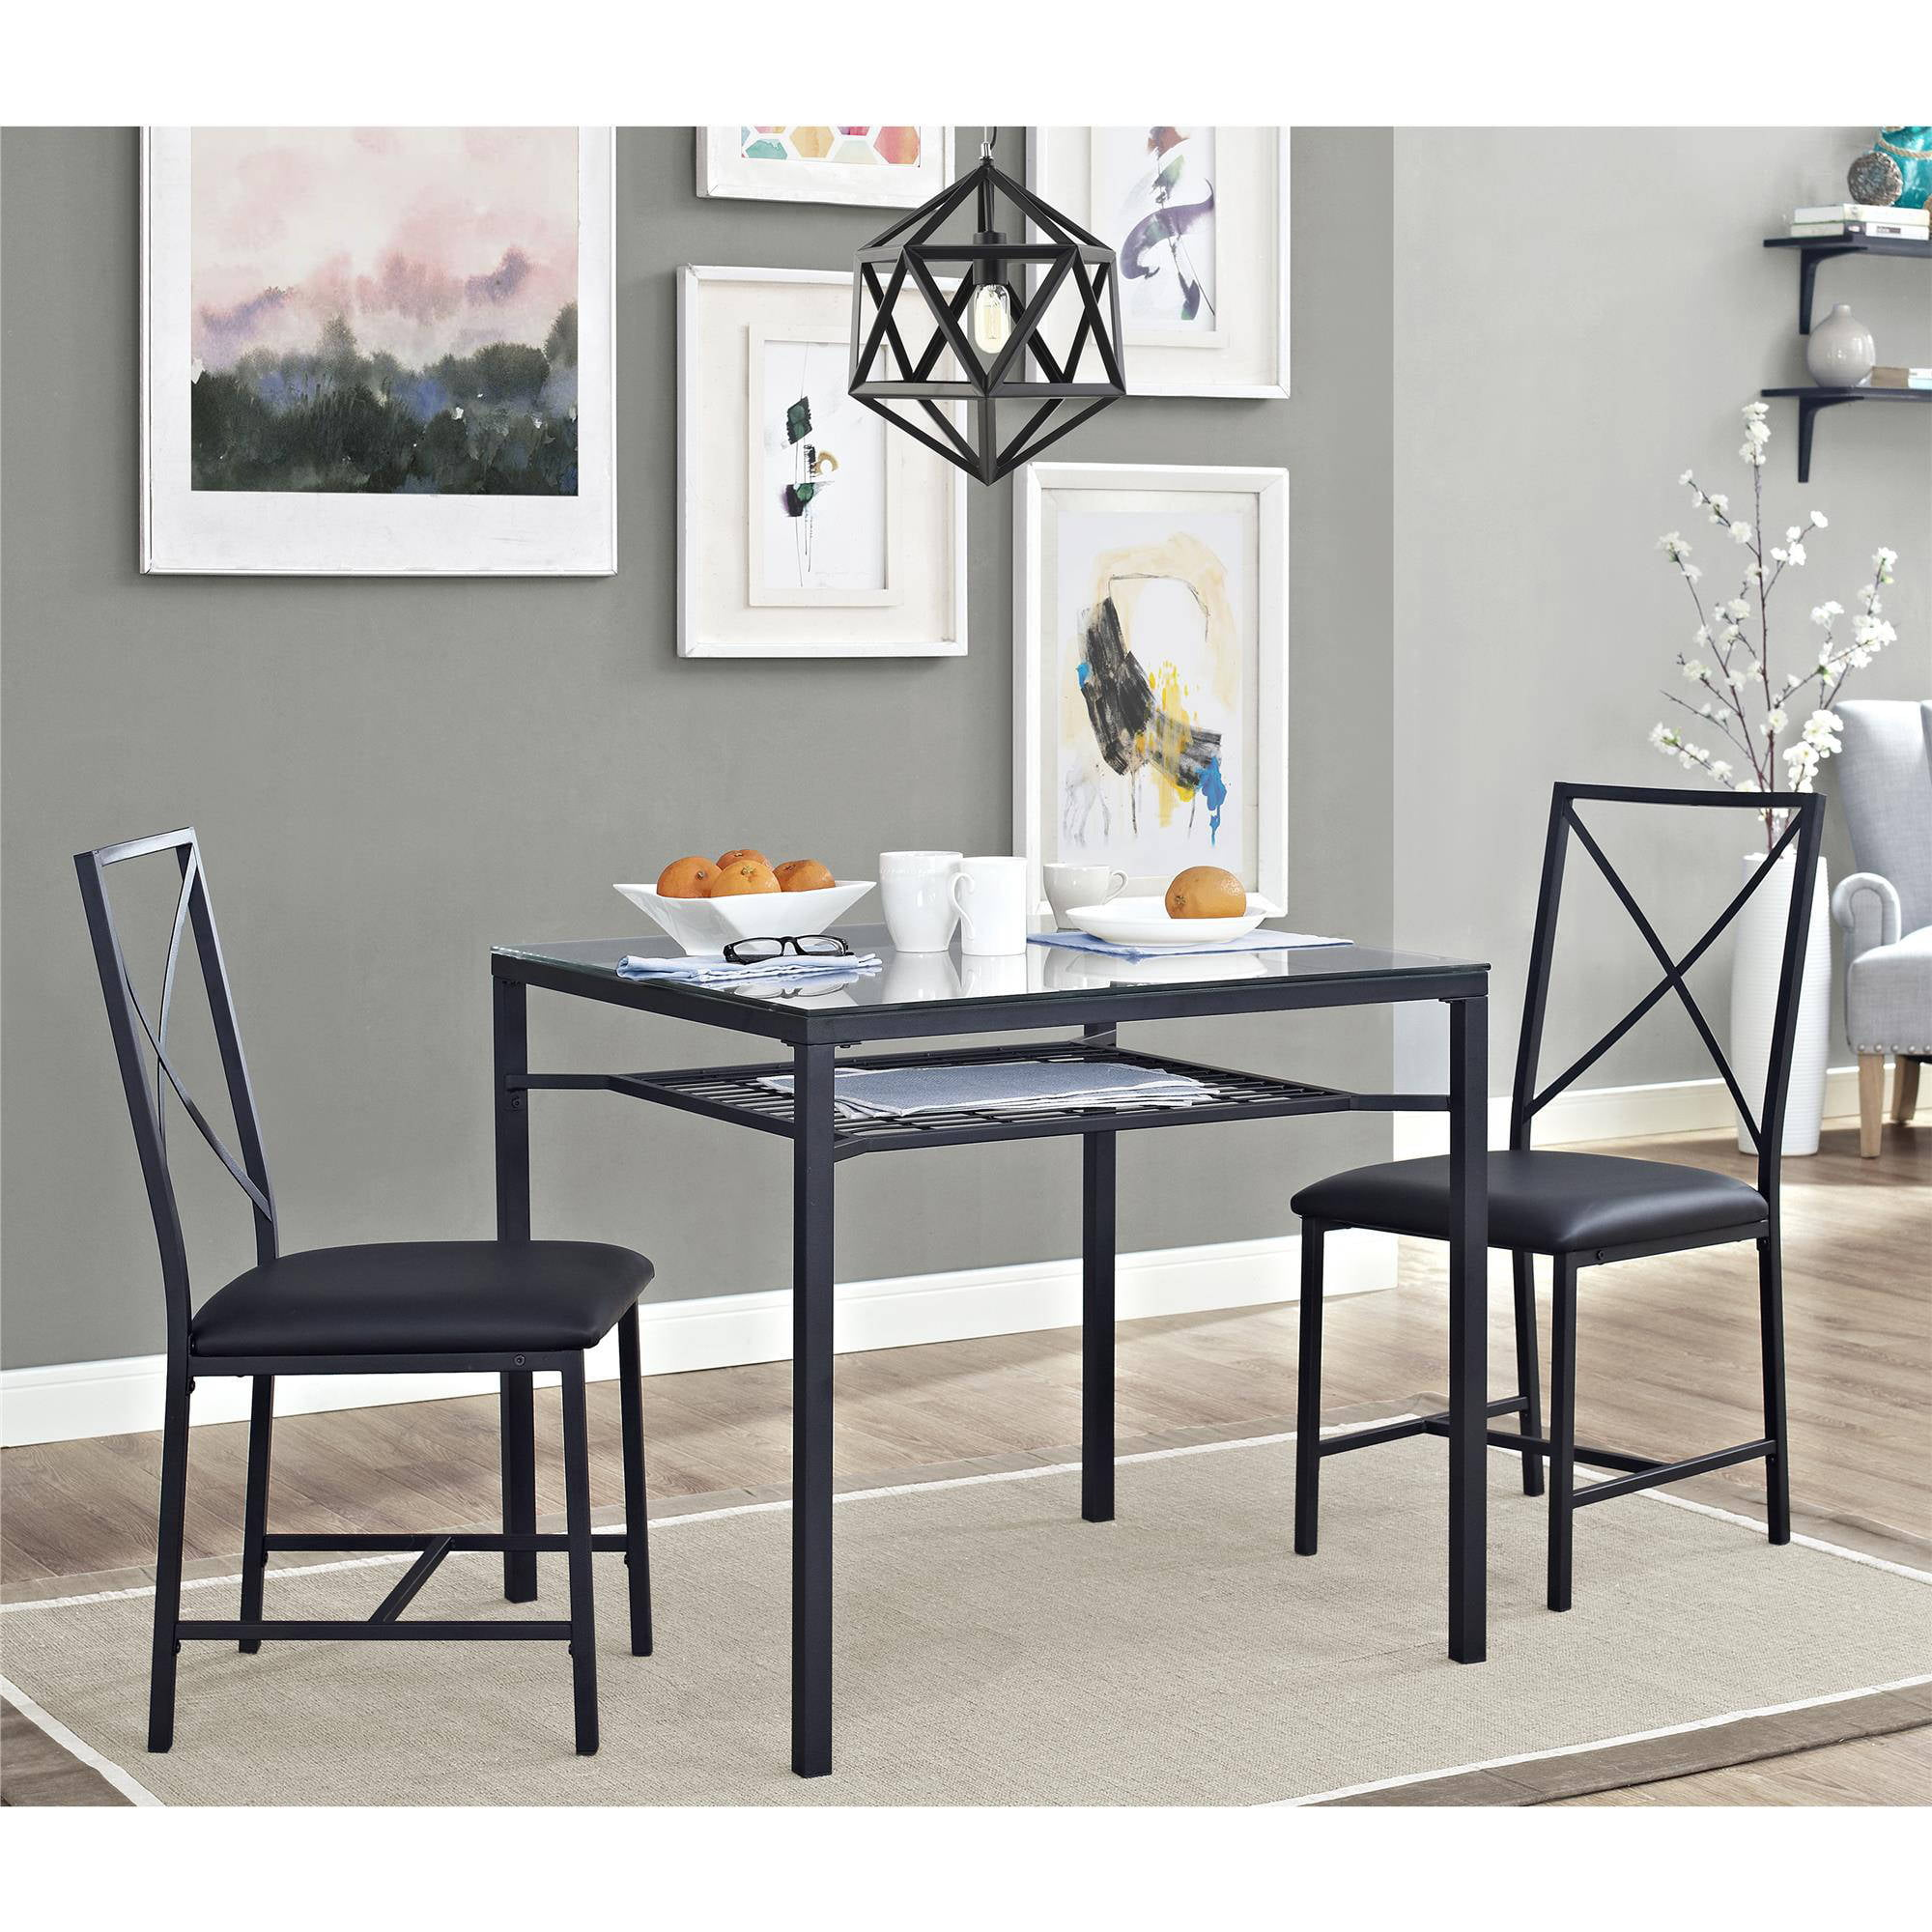 Glass Kitchen Table Sets Mainstays 3 piece metal and glass dinette black walmart workwithnaturefo